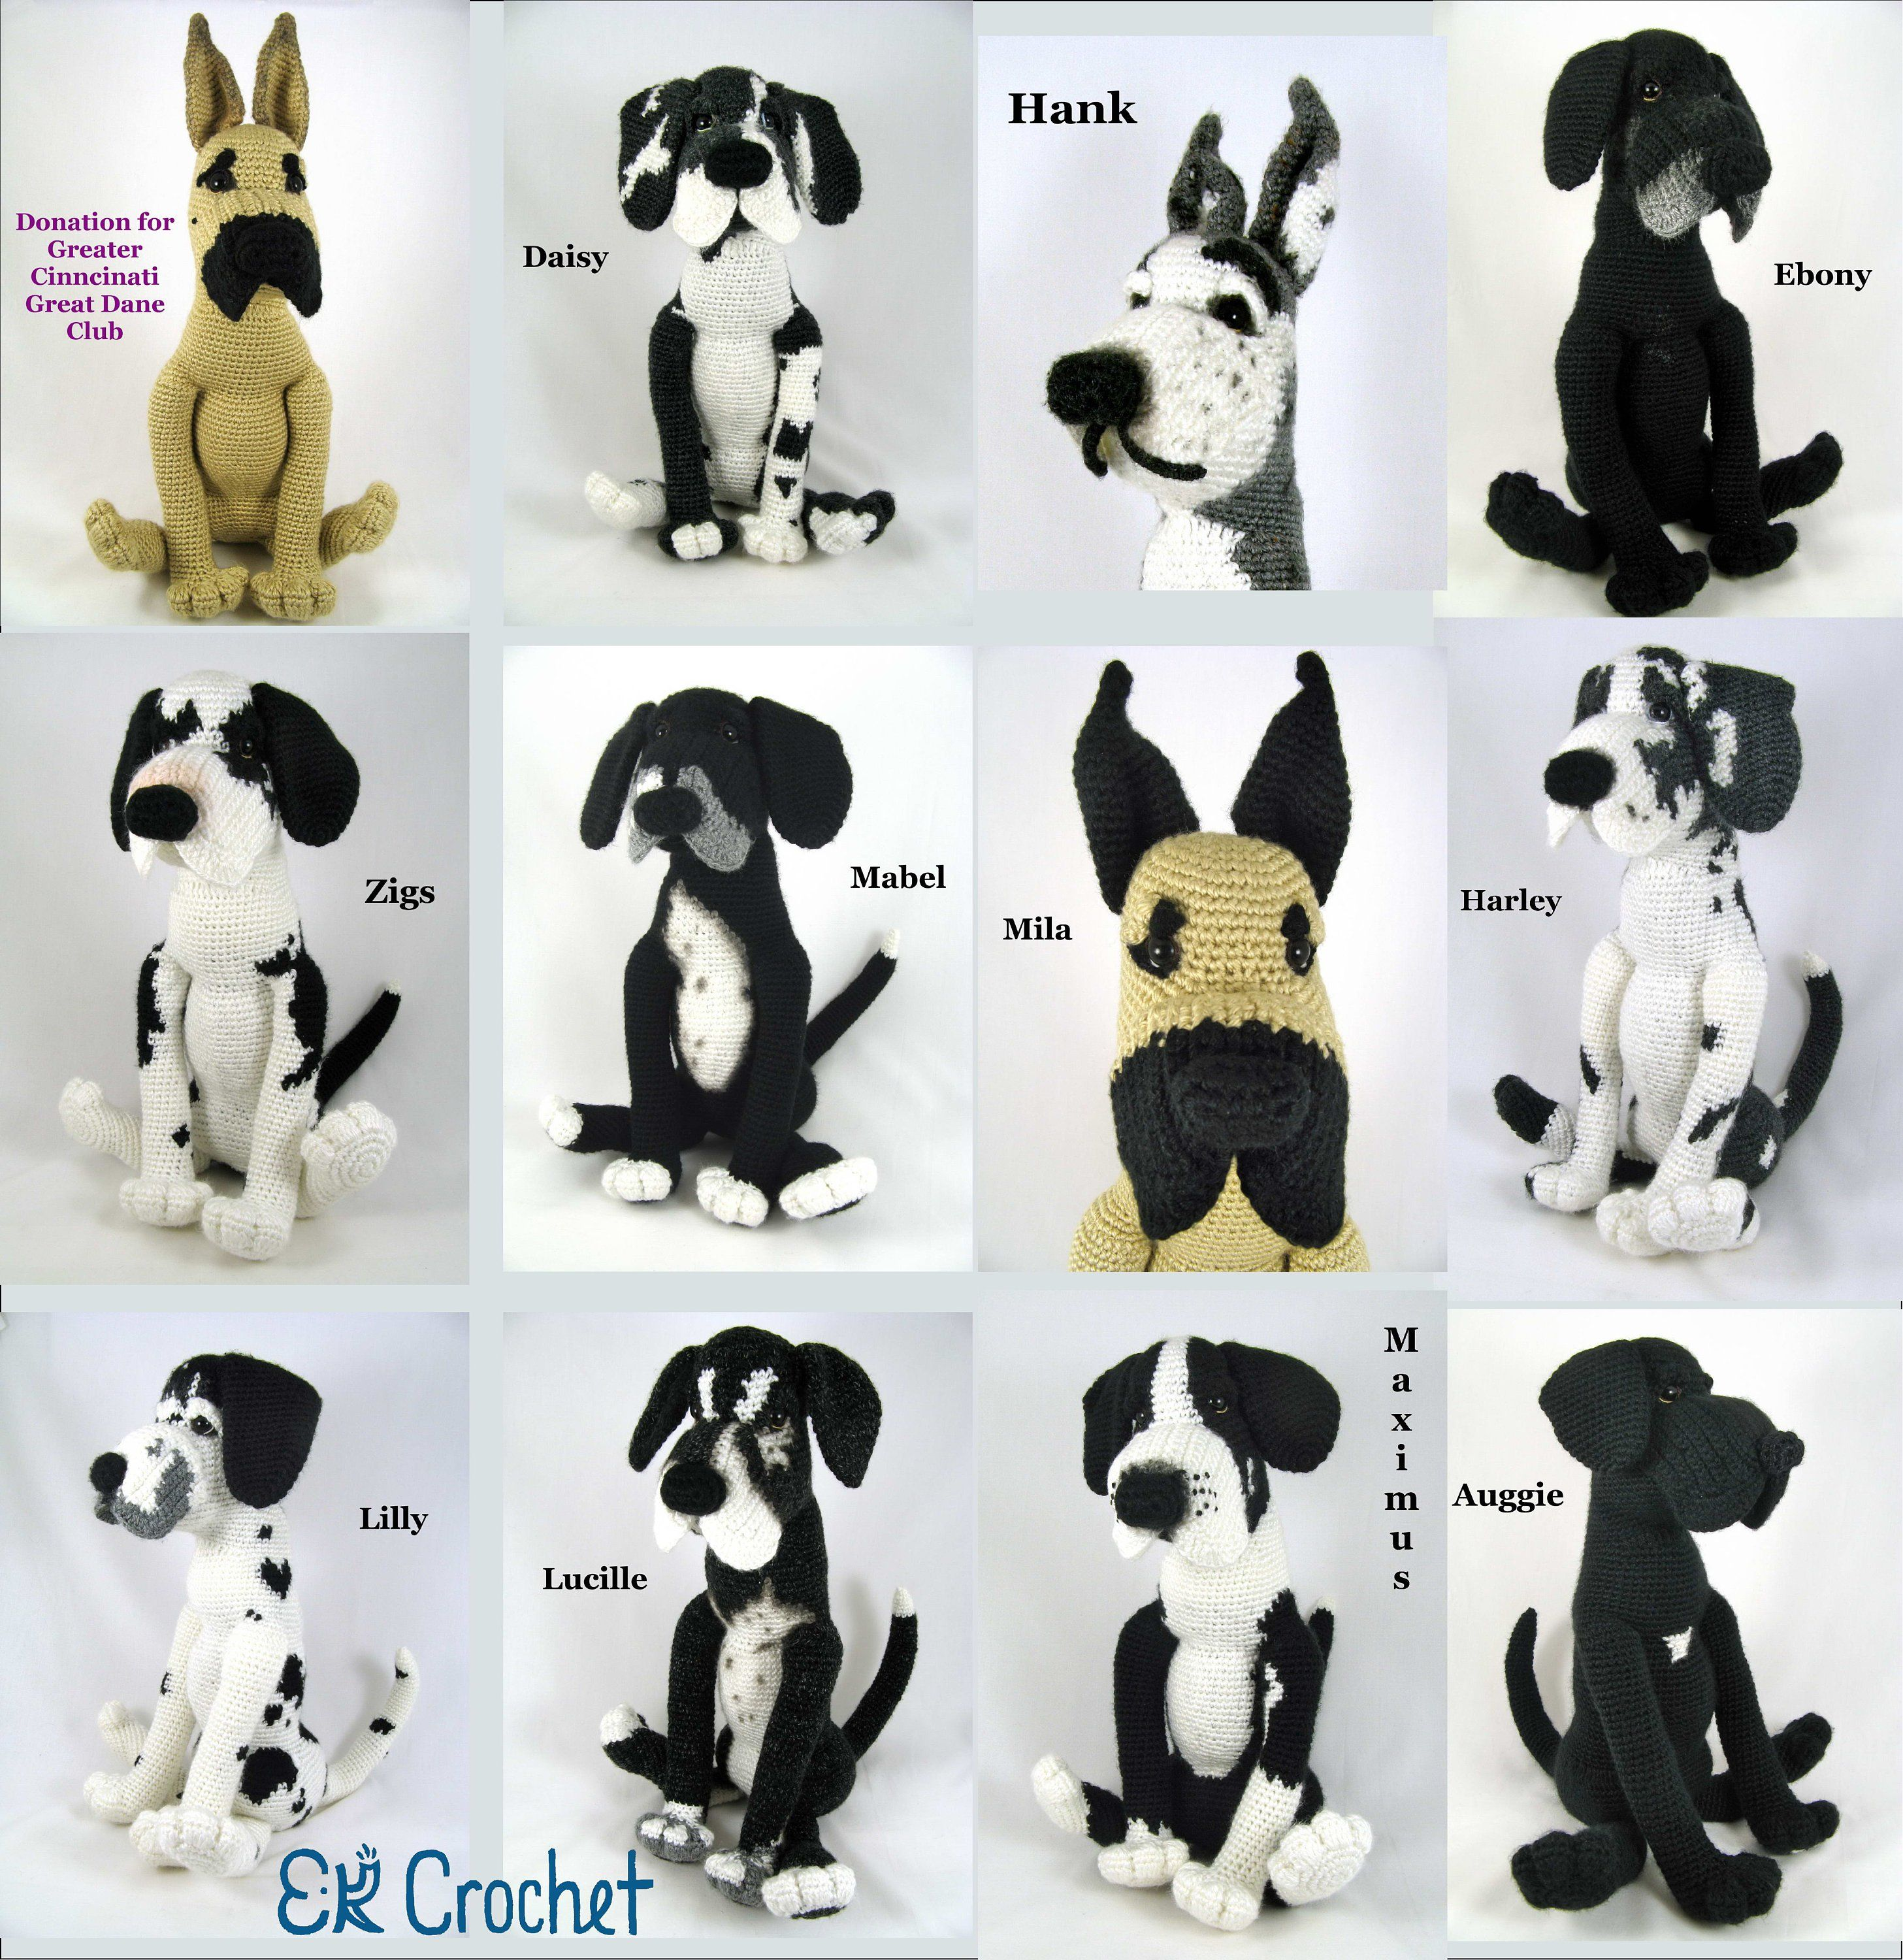 Great Dane Stuffed Dogs By Piutre Italy World S Largest Source